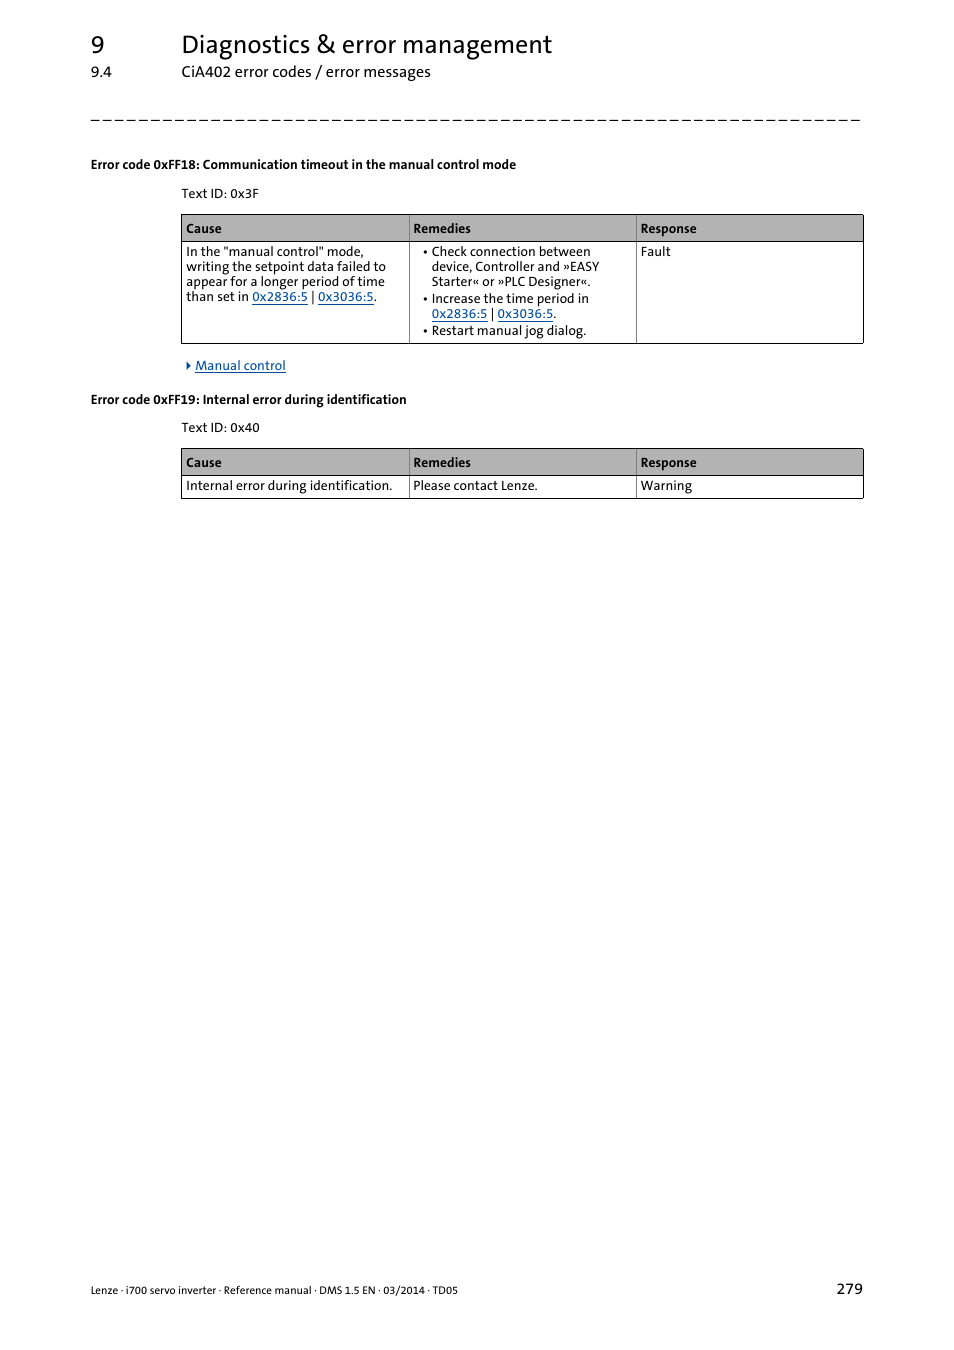 9diagnostics Error Management Lenze I700 User Manual Page 279 338